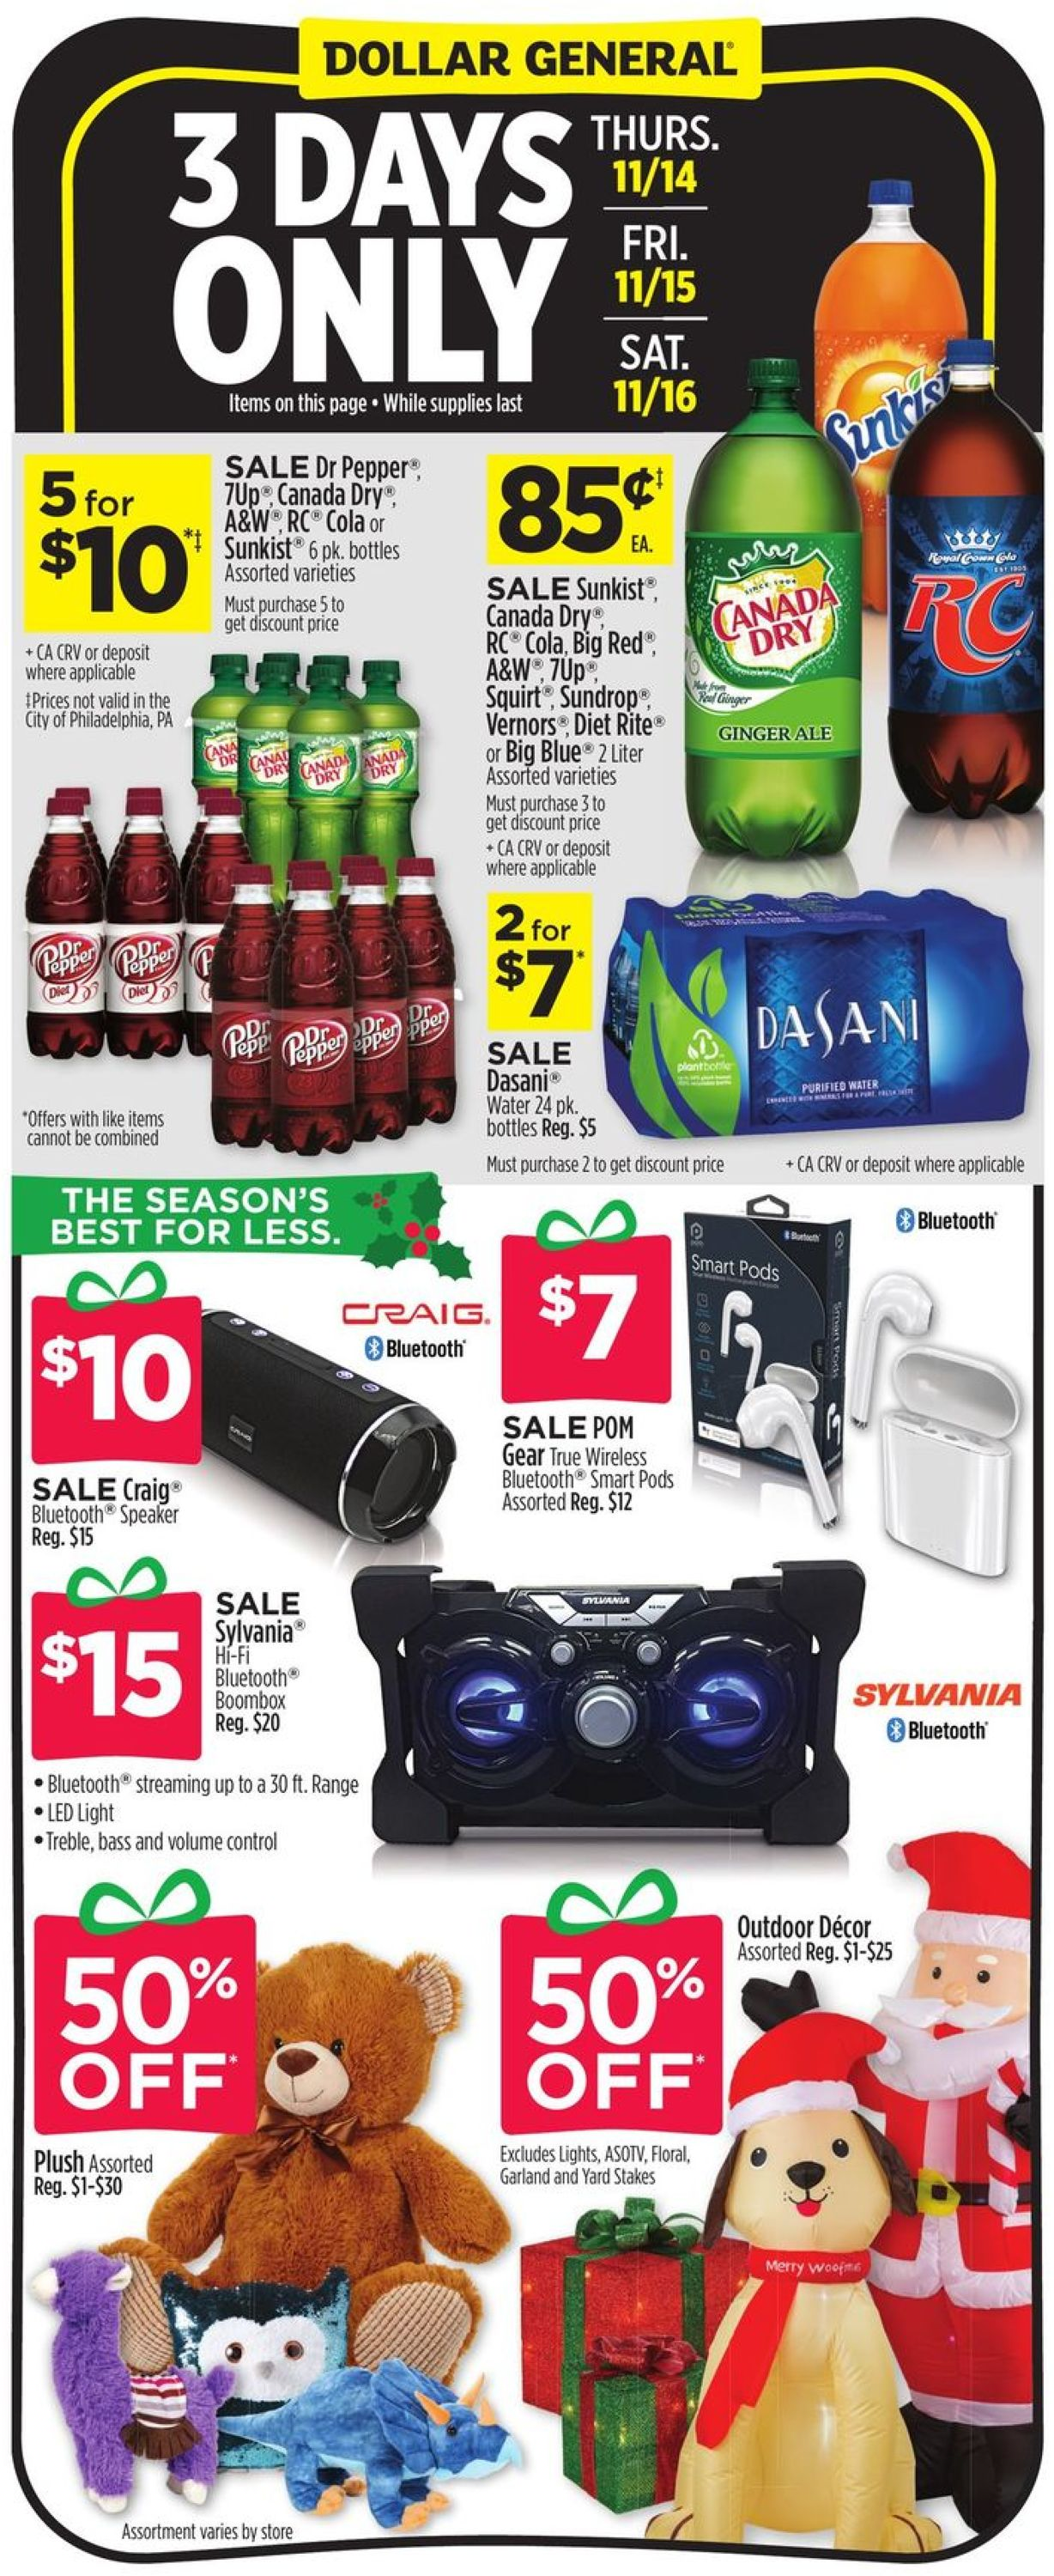 Dollar General Current weekly ad 10/10 - 10/10/10 - frequent-ads.com